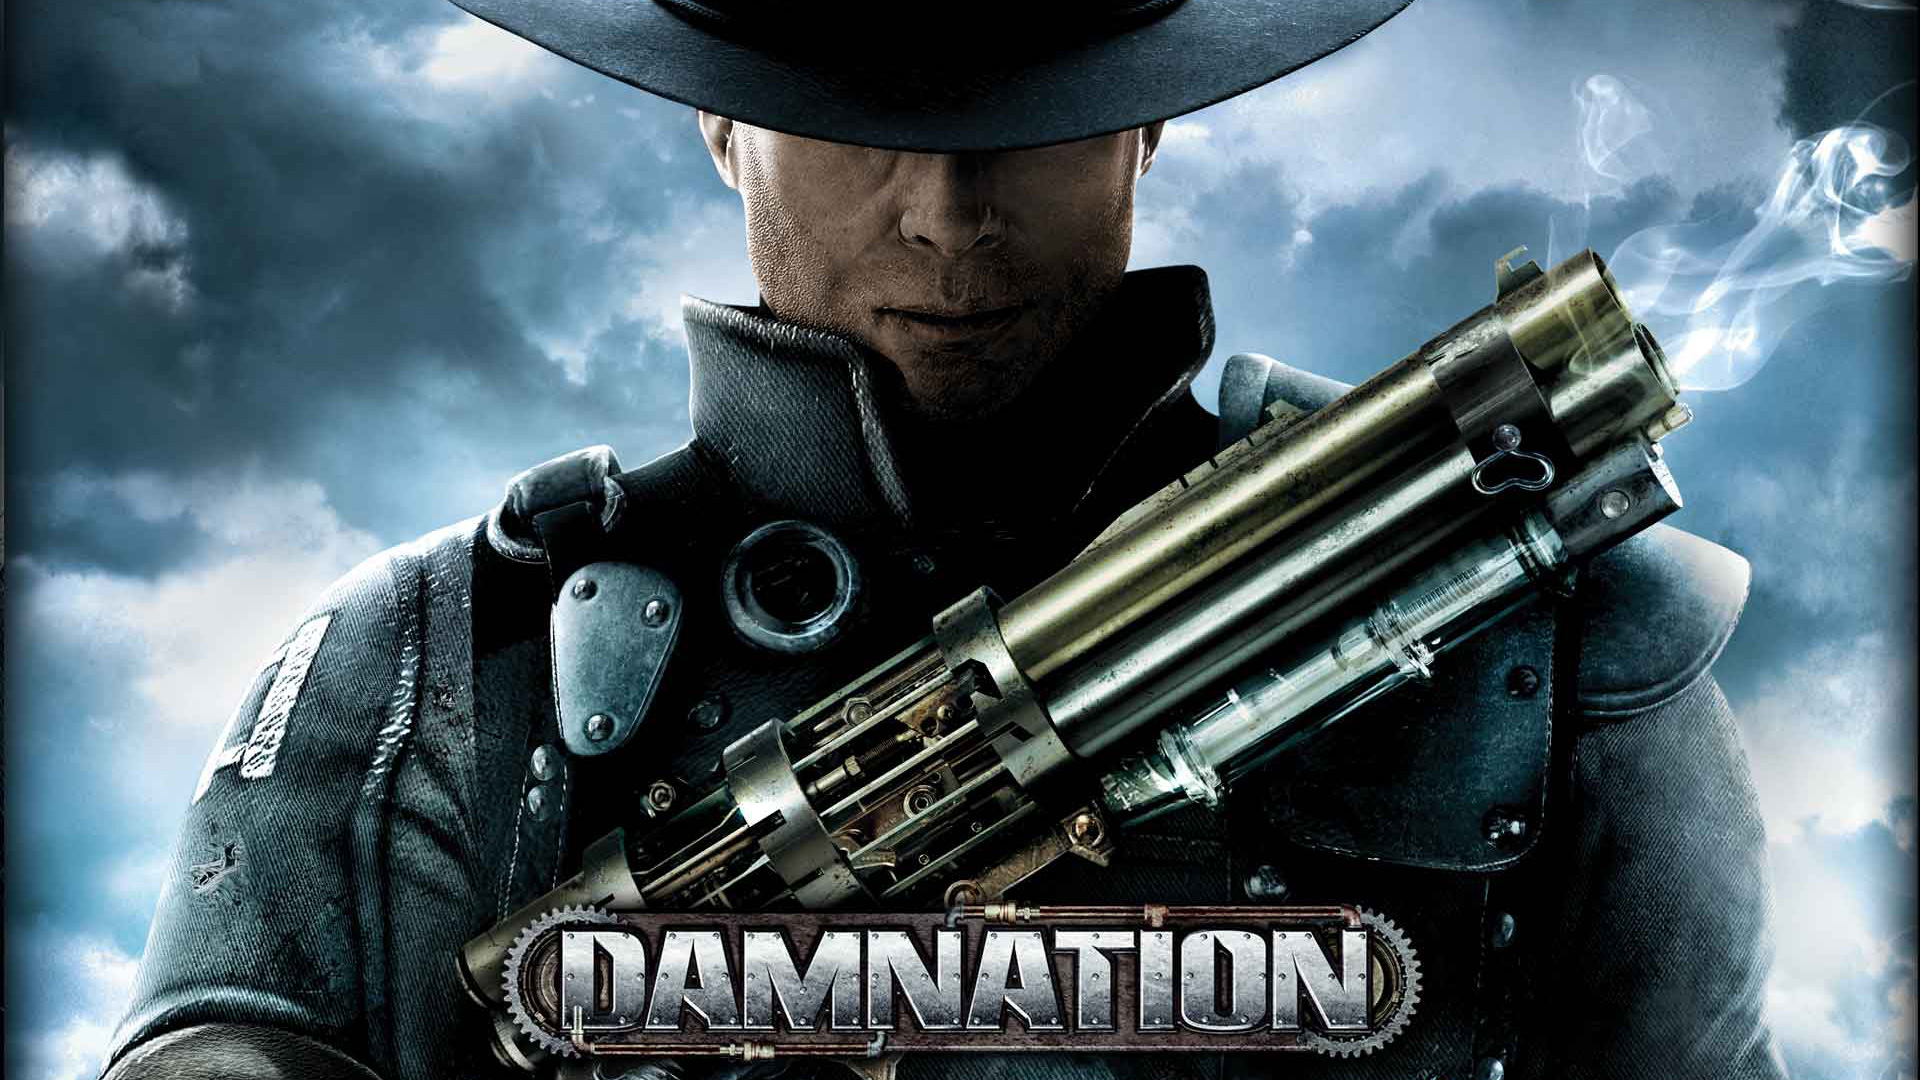 Damnation Wallpaper in 1920x1080